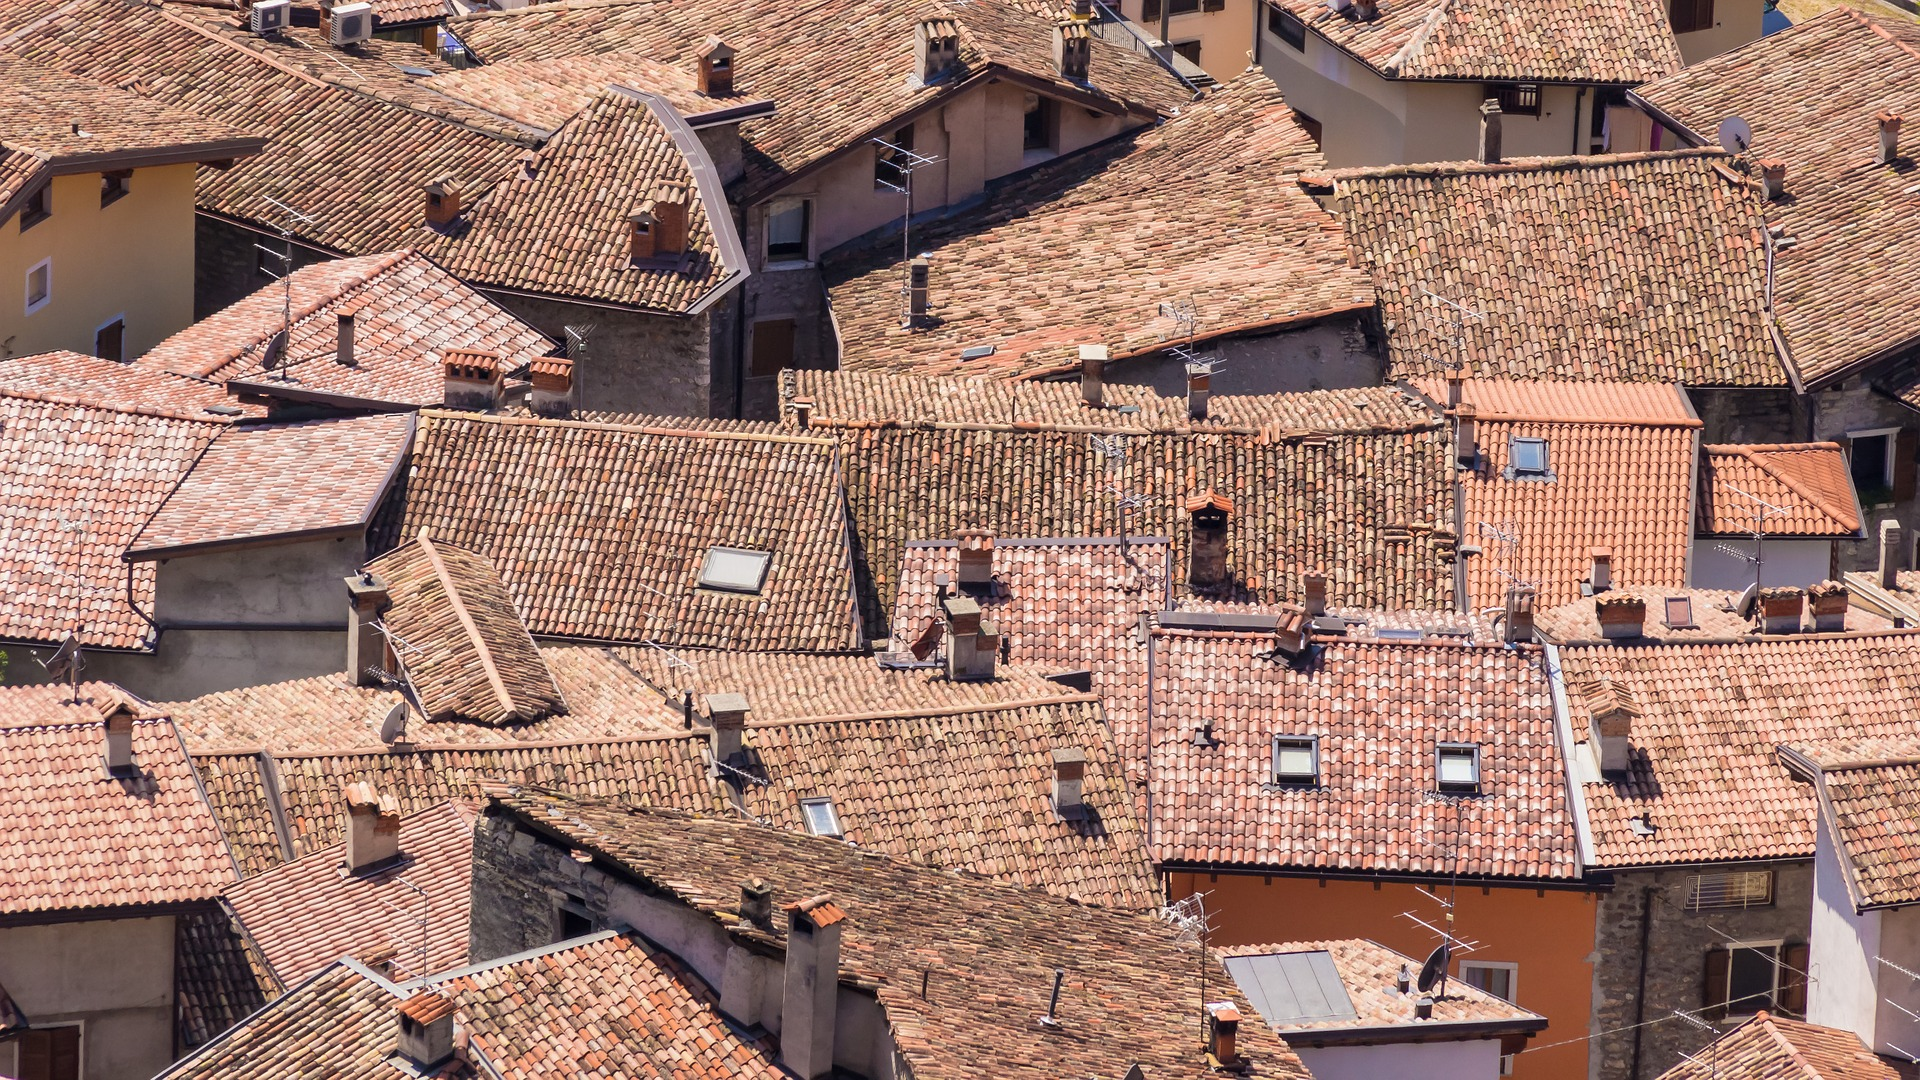 a birds eye view of a jumbled collection of roofs